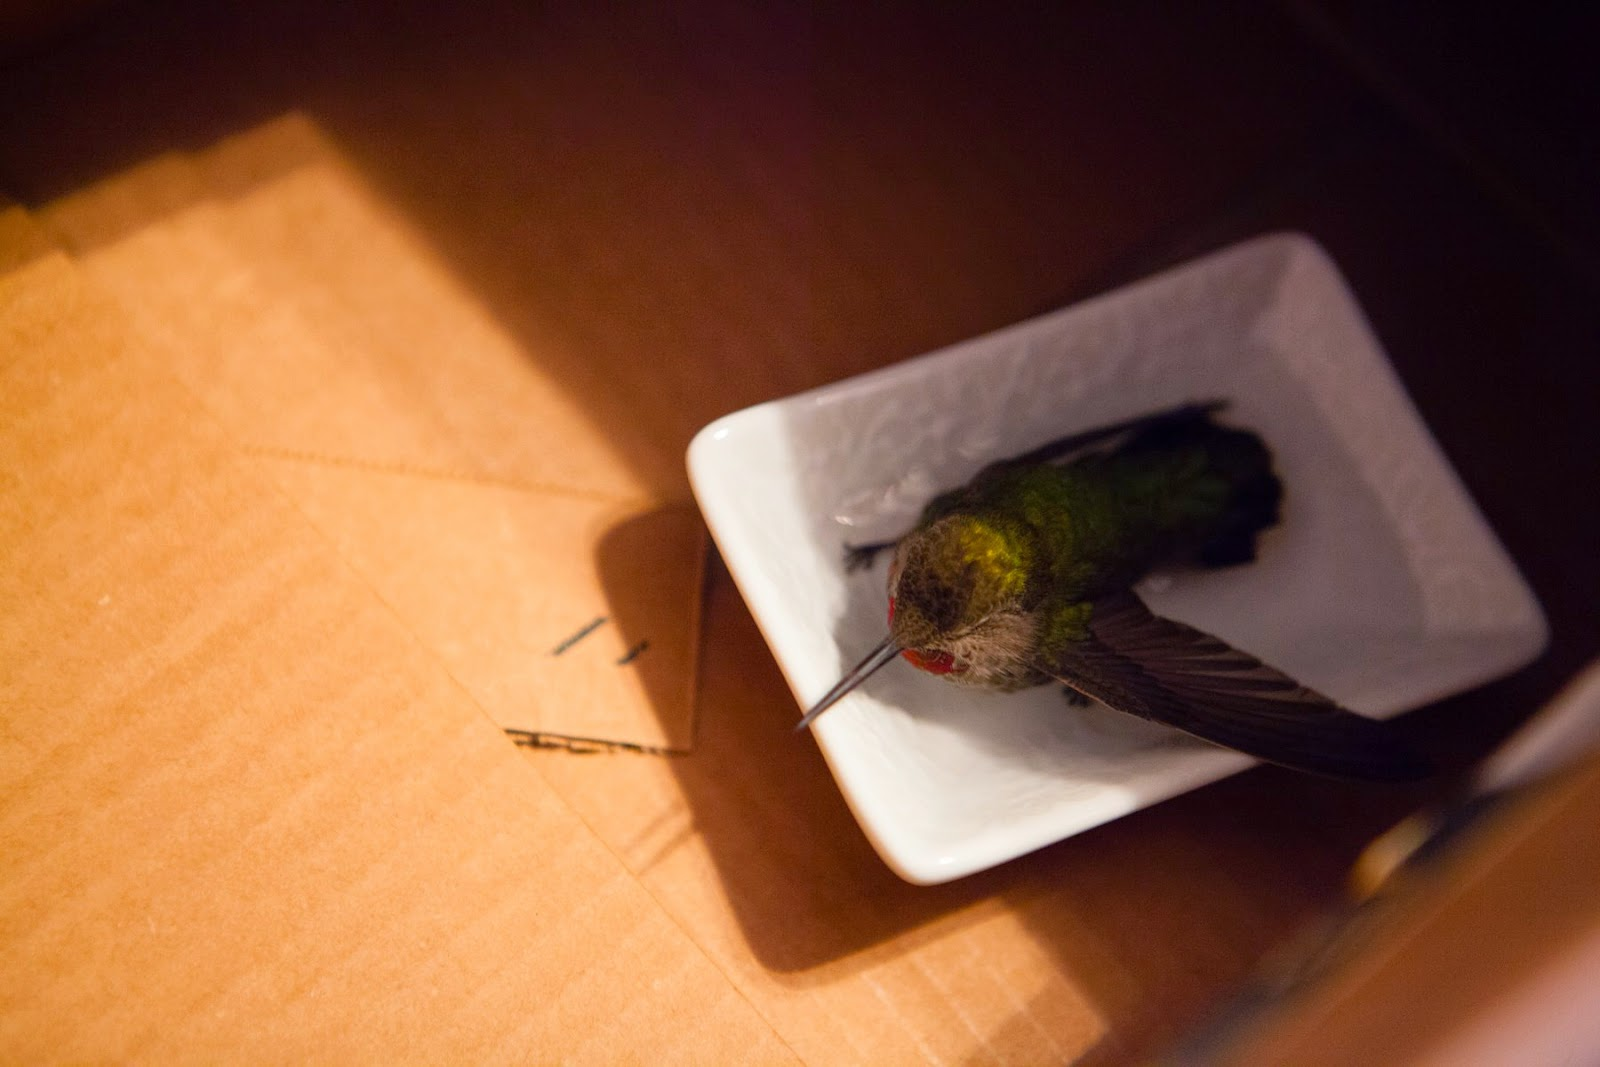 Taking care of a hummingbird